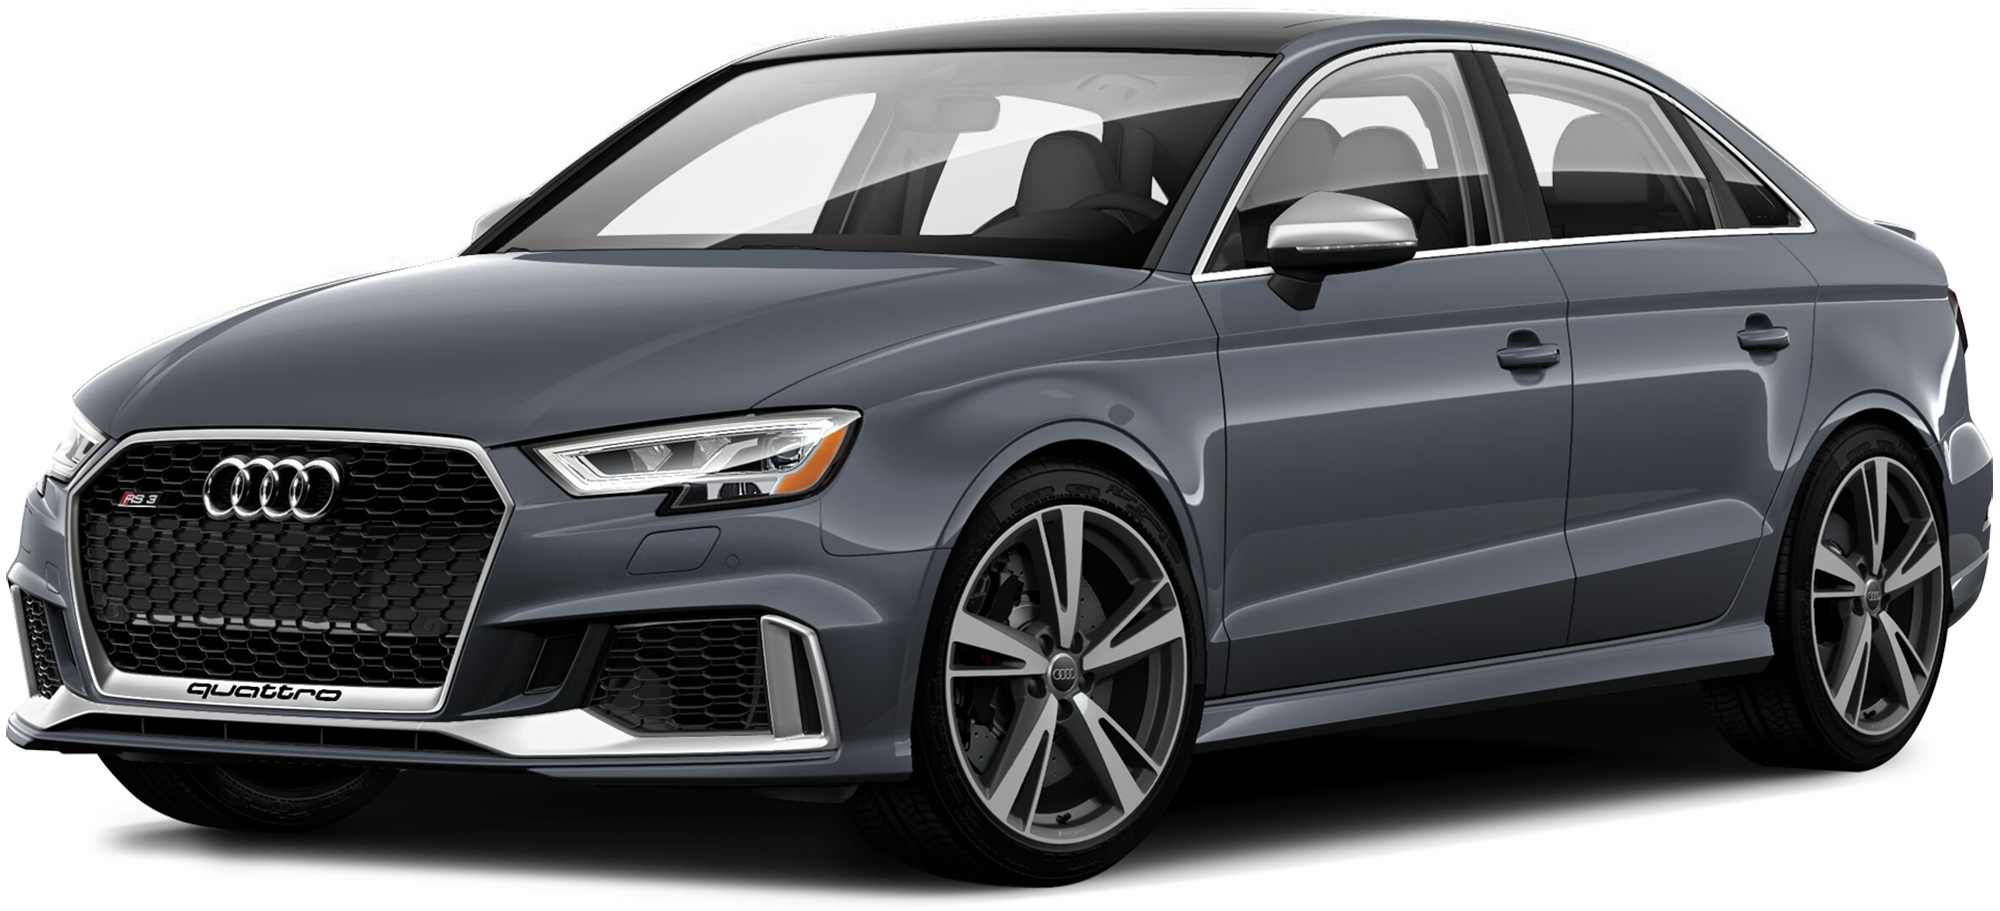 Audi Incentives Rebates Specials In Audi Finance And Lease